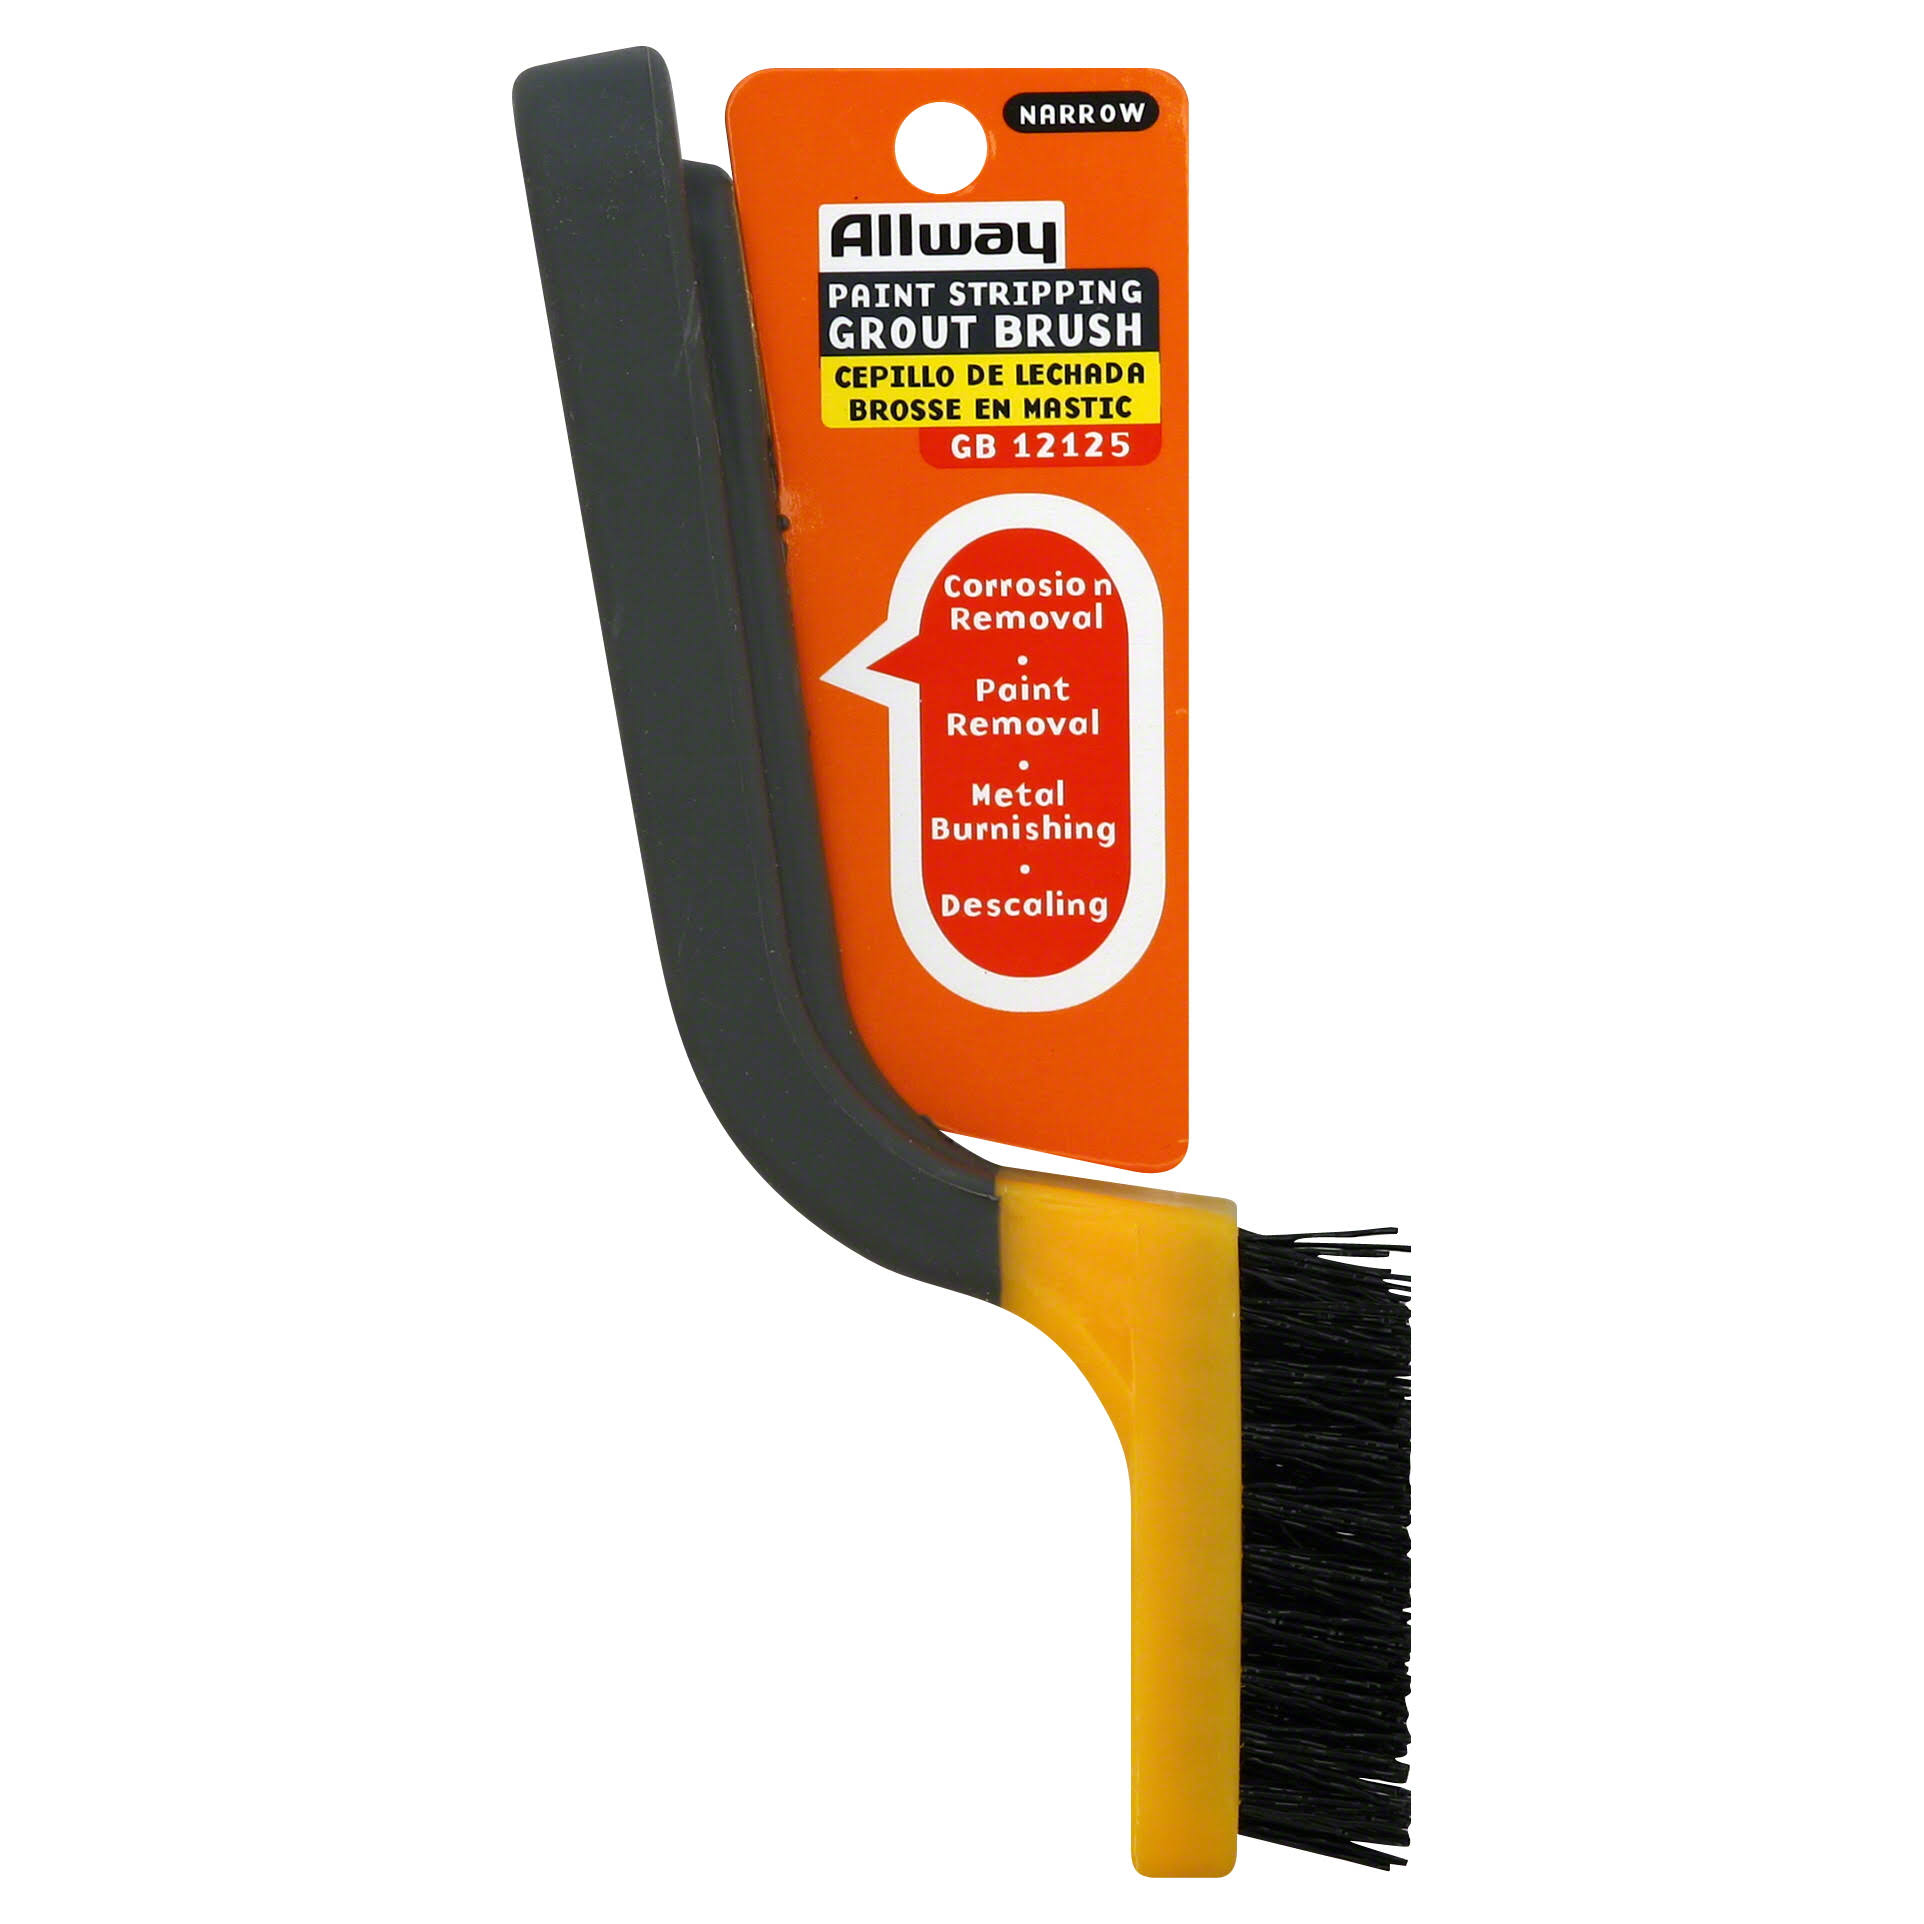 Allway Tools Paint Stripping and Grout Brush - Nylon Bristle